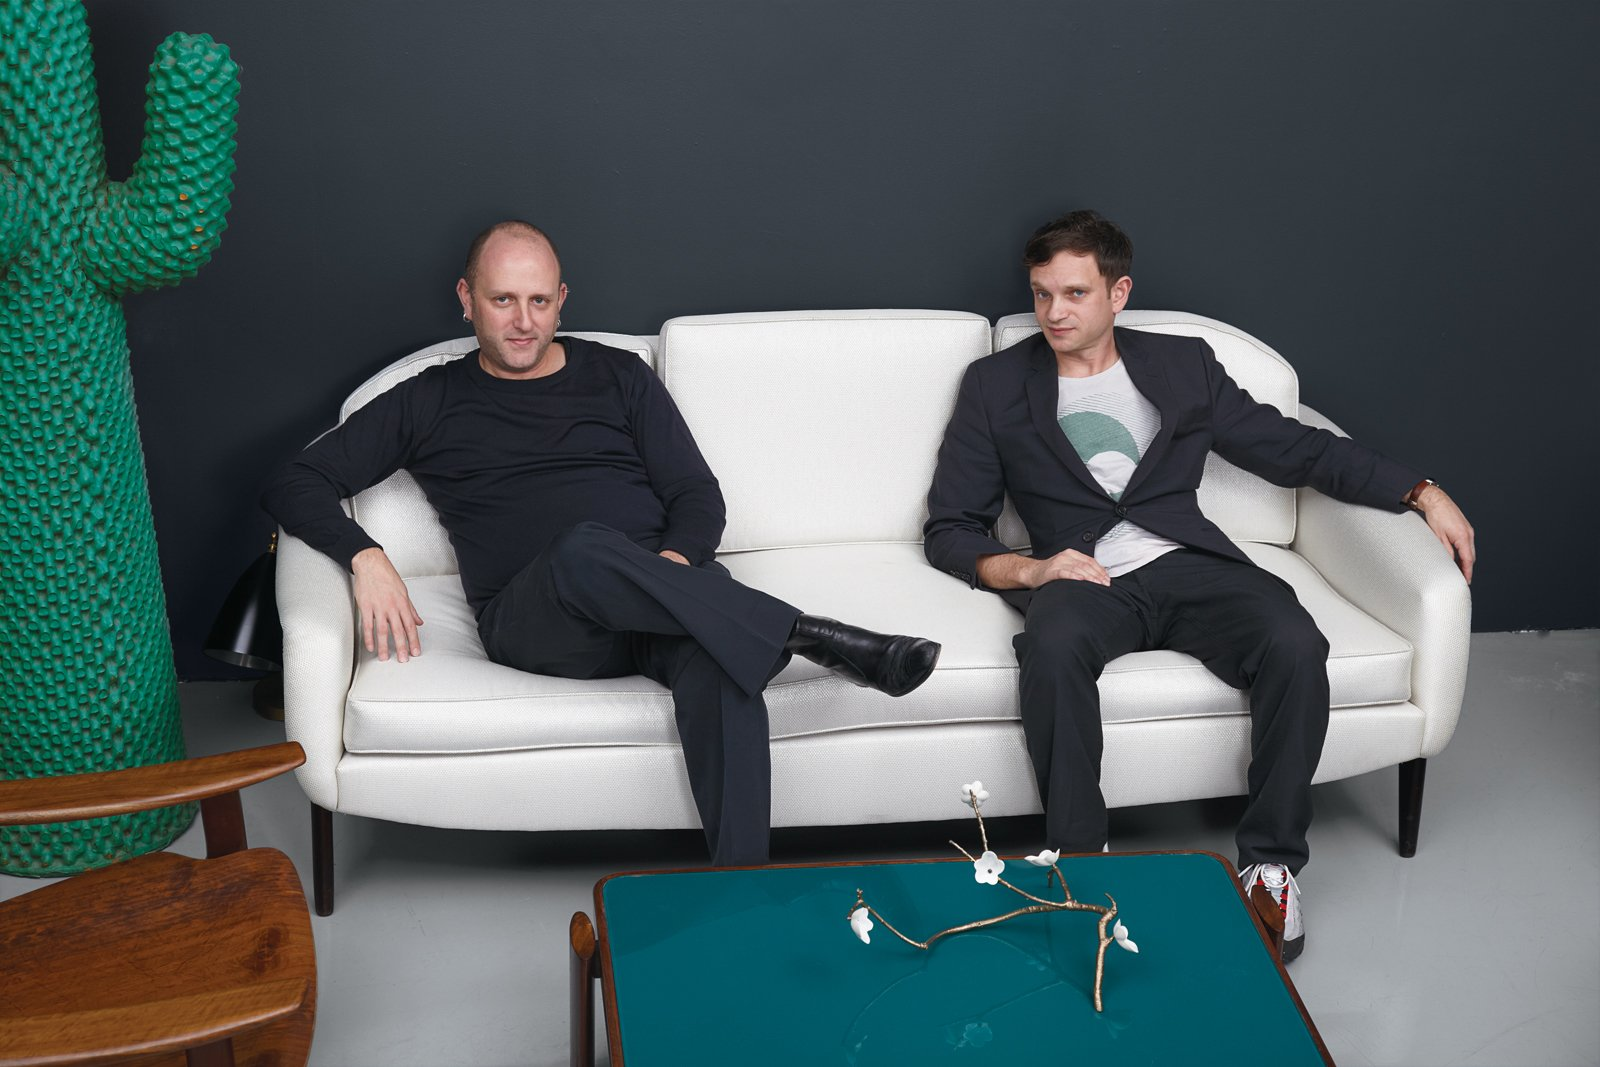 Owners Zesty Meyers and Evan Snyderman lounge on this Stella sofa from Sergio Rodrigues. Also shown, bronze branch by David Wiseman, and Cactus coat rack by Guido Drocco and Franco Mello.  Revival of the Fittest by Jordan Kushins